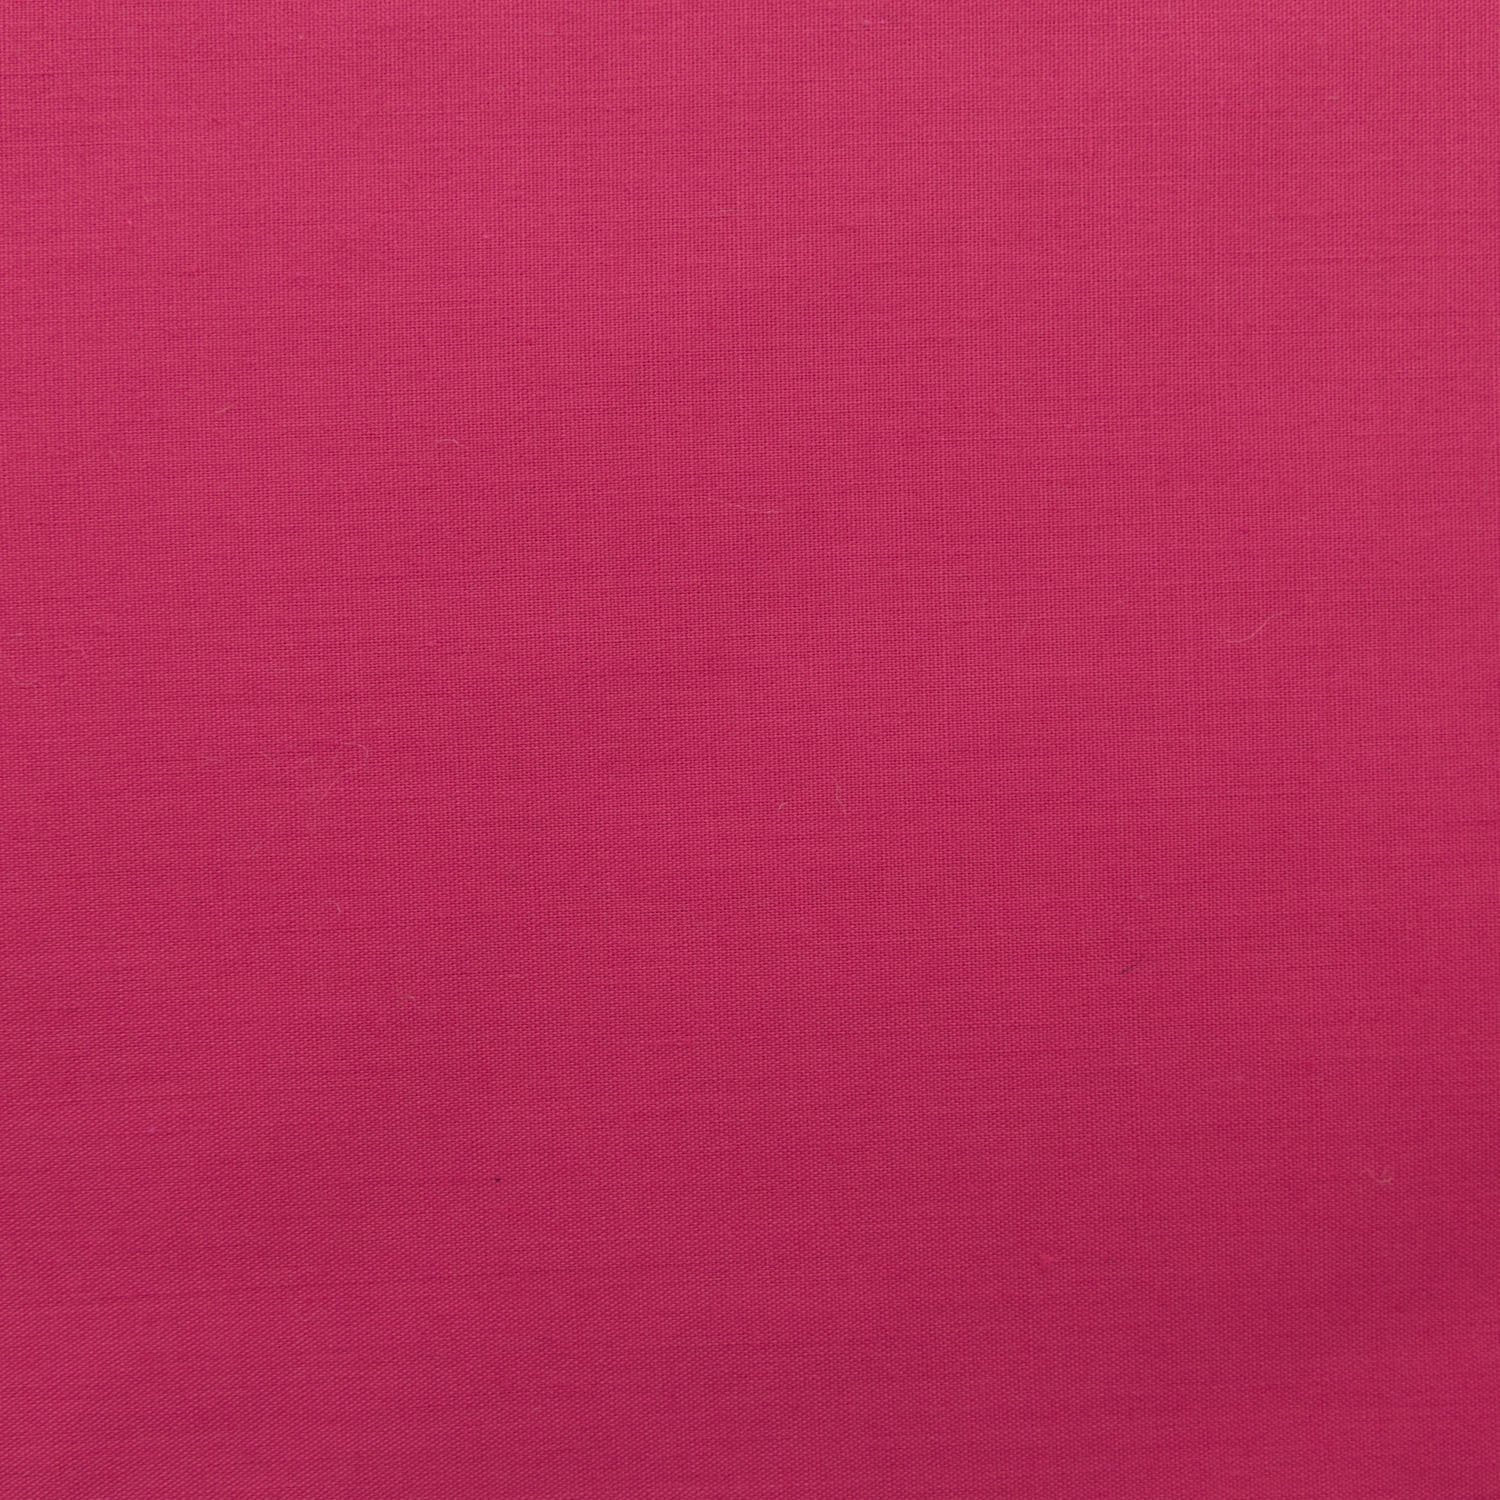 "Hot Pink Broadcloth Fabric 45"" - By The Yard"